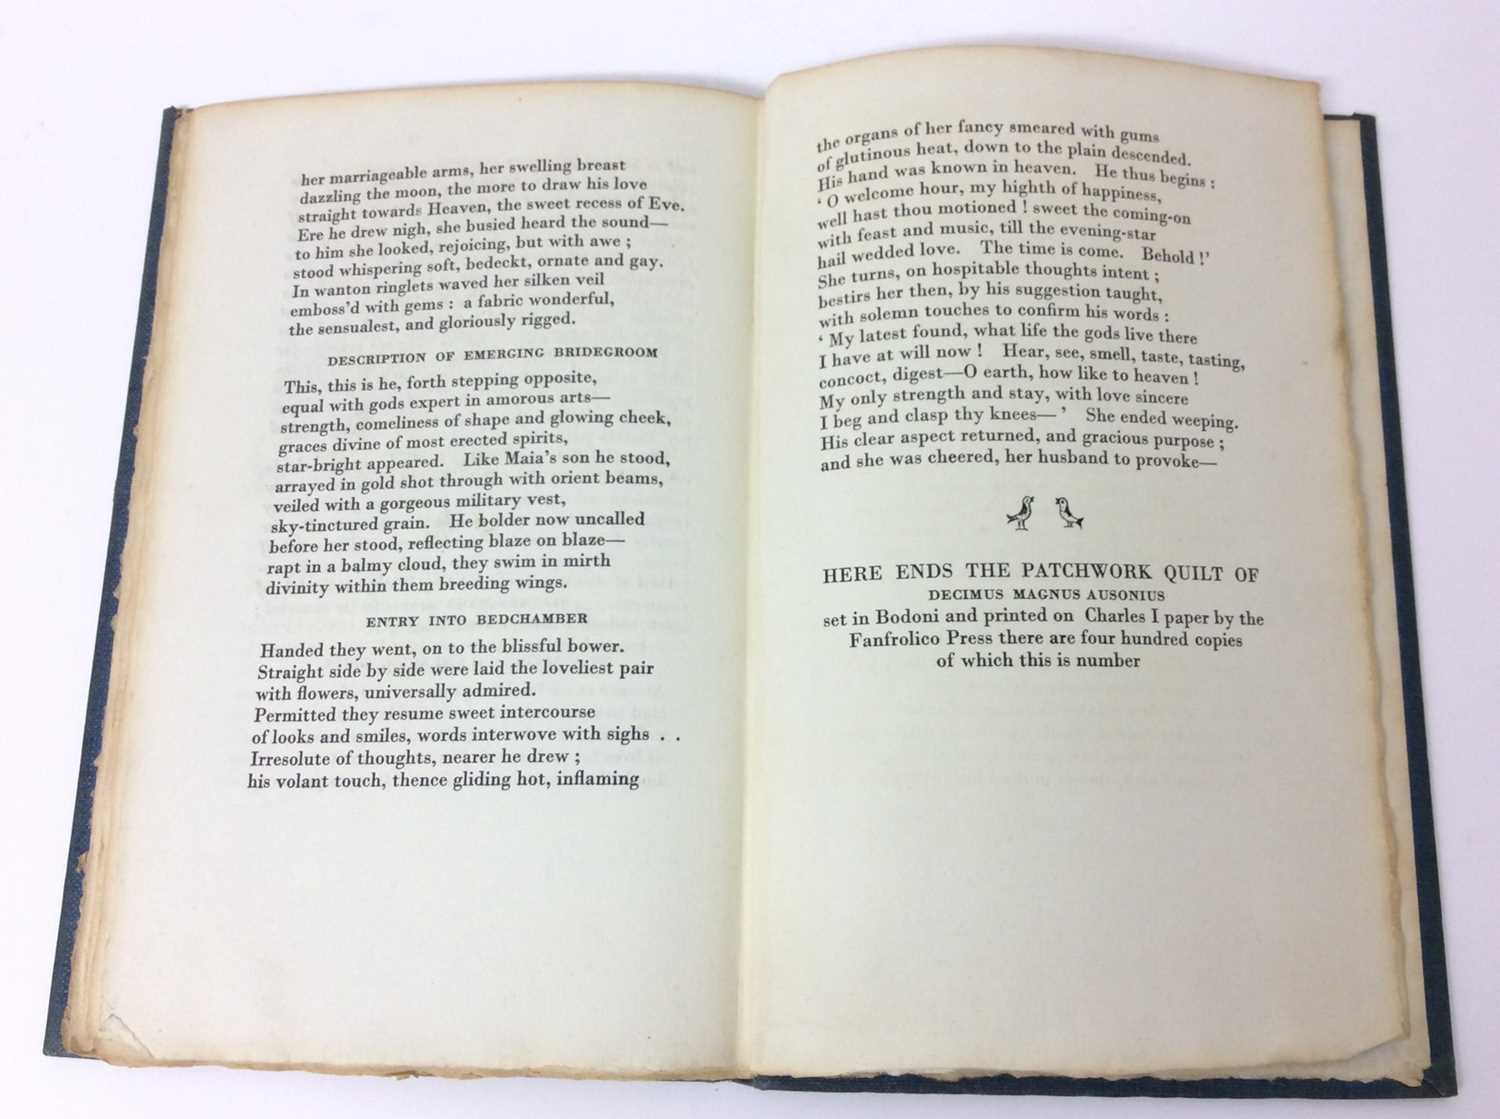 Patchwork Quilt. Poems by Decimus Magnus Ausonius, with illustrations by Edward Bawden, Franfrolico - Image 7 of 7